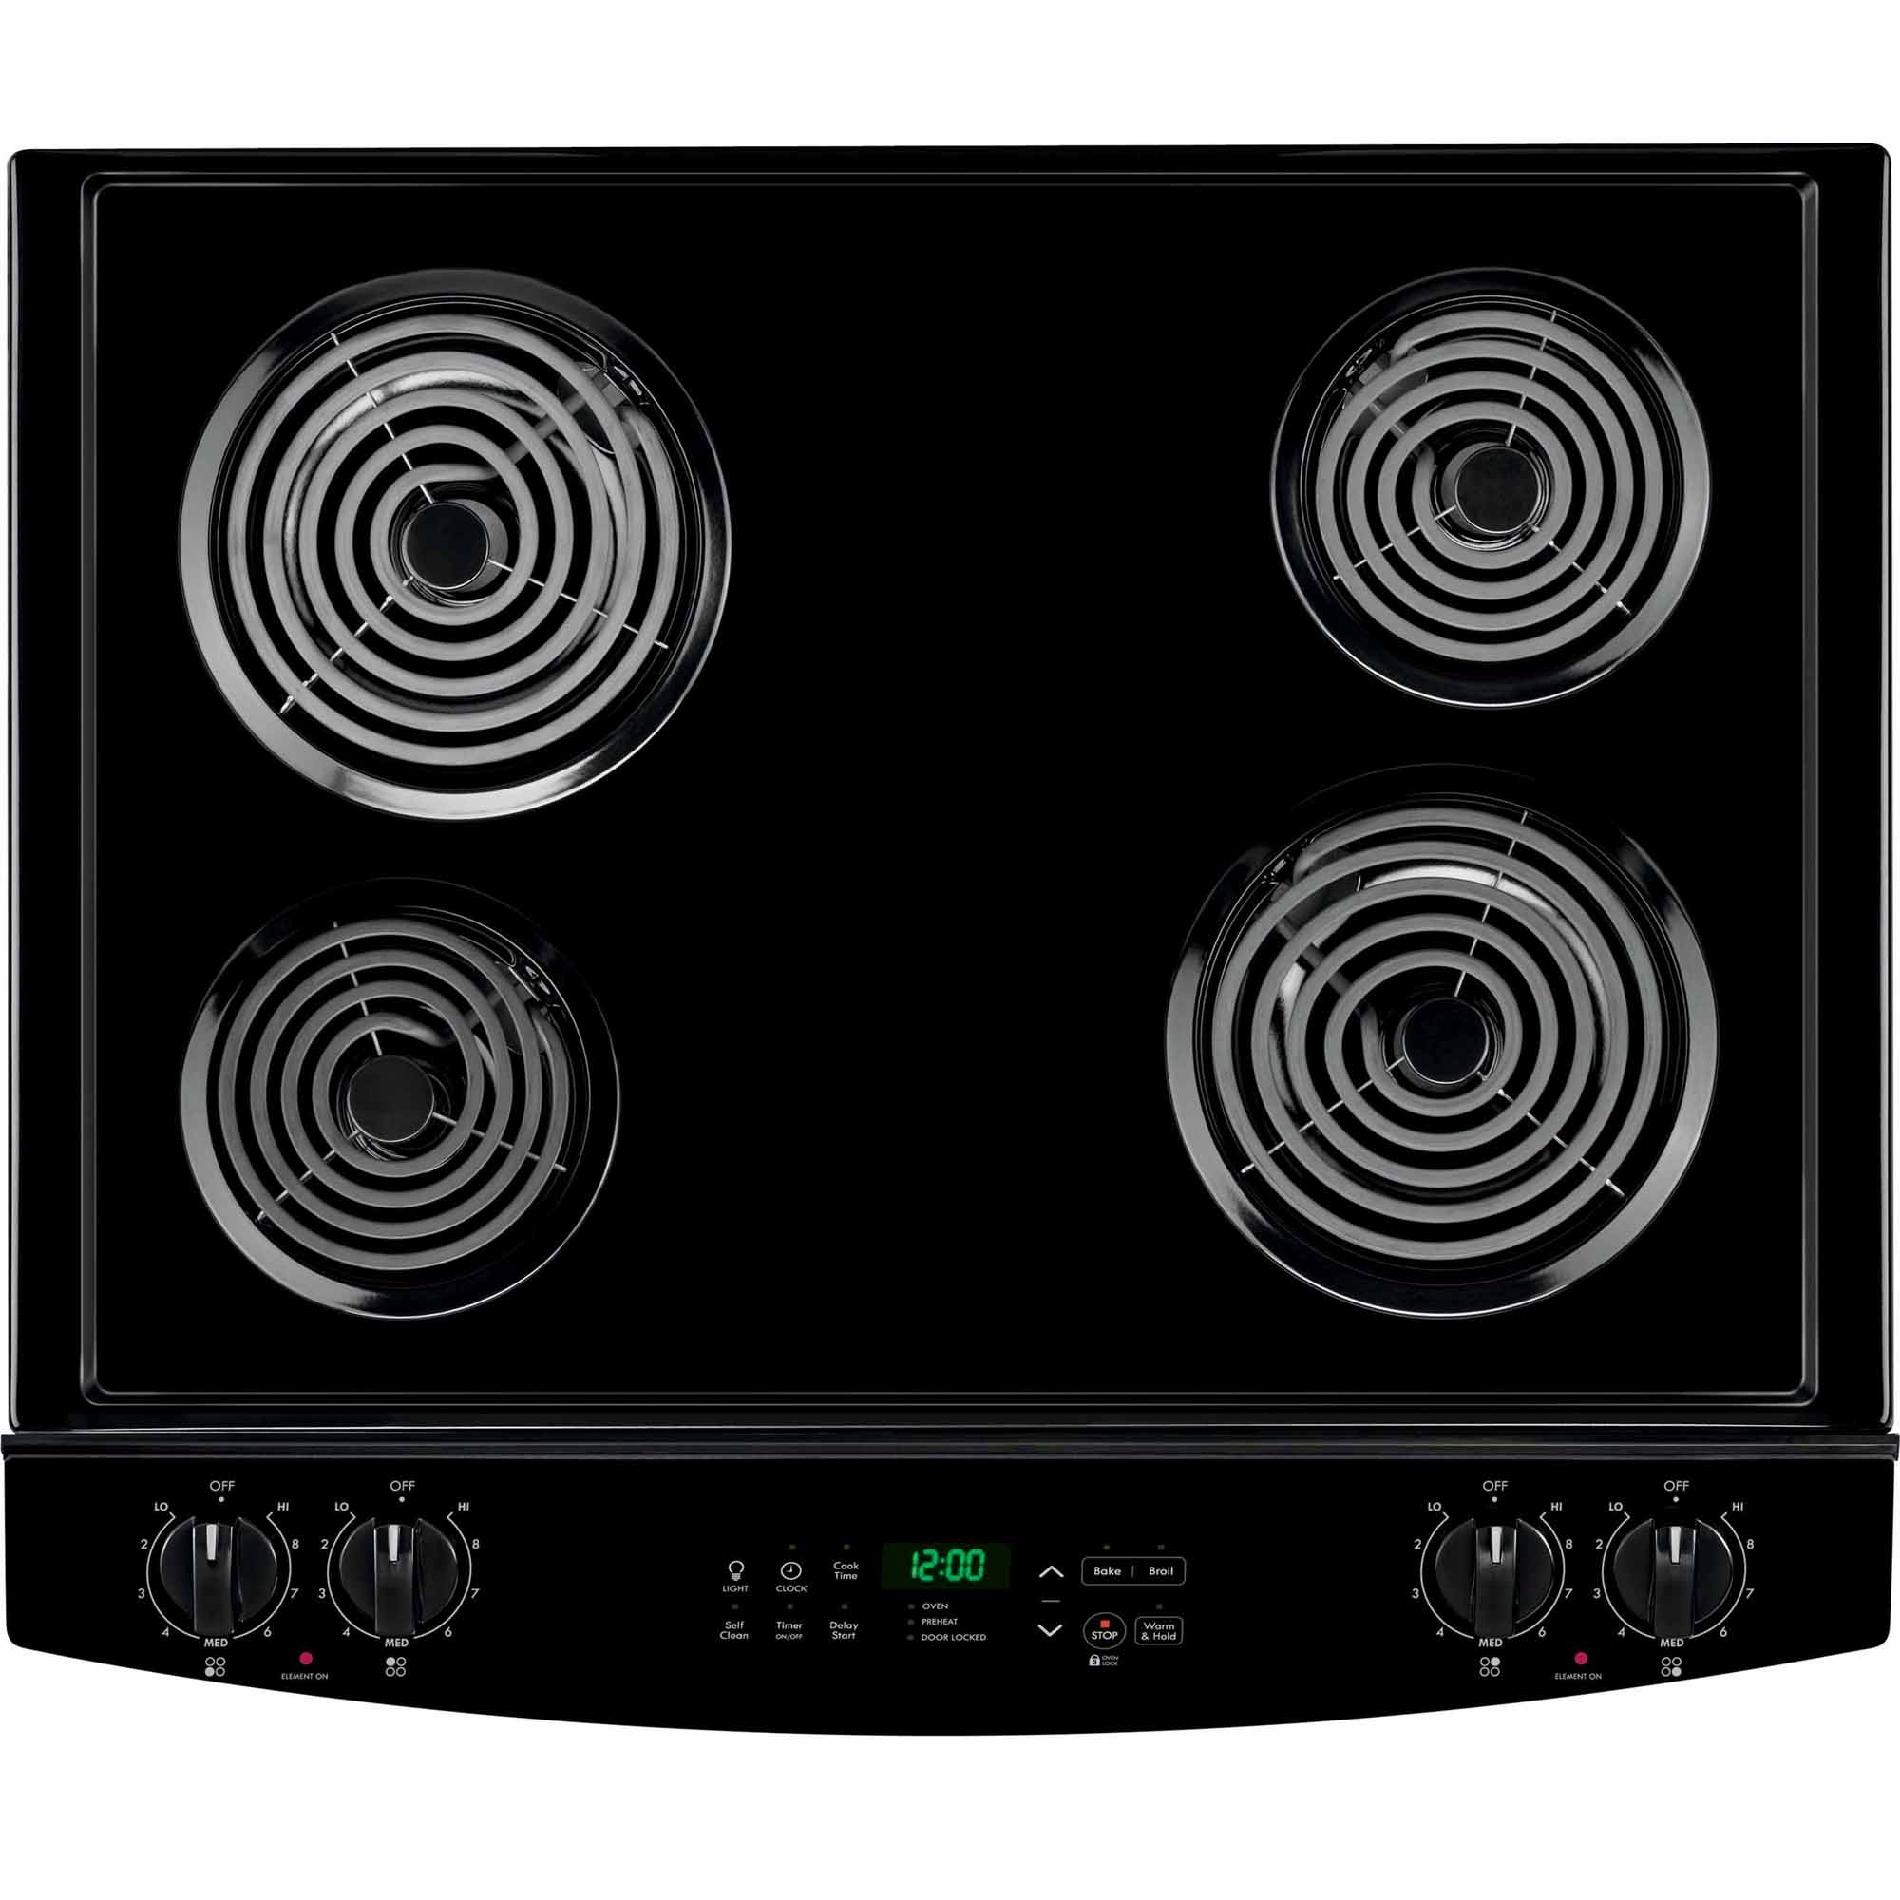 Kenmore 42529 4.6 cu. ft. Self-Clean Slide-In Electric Range w/ Deluxe Coil Elements - Black